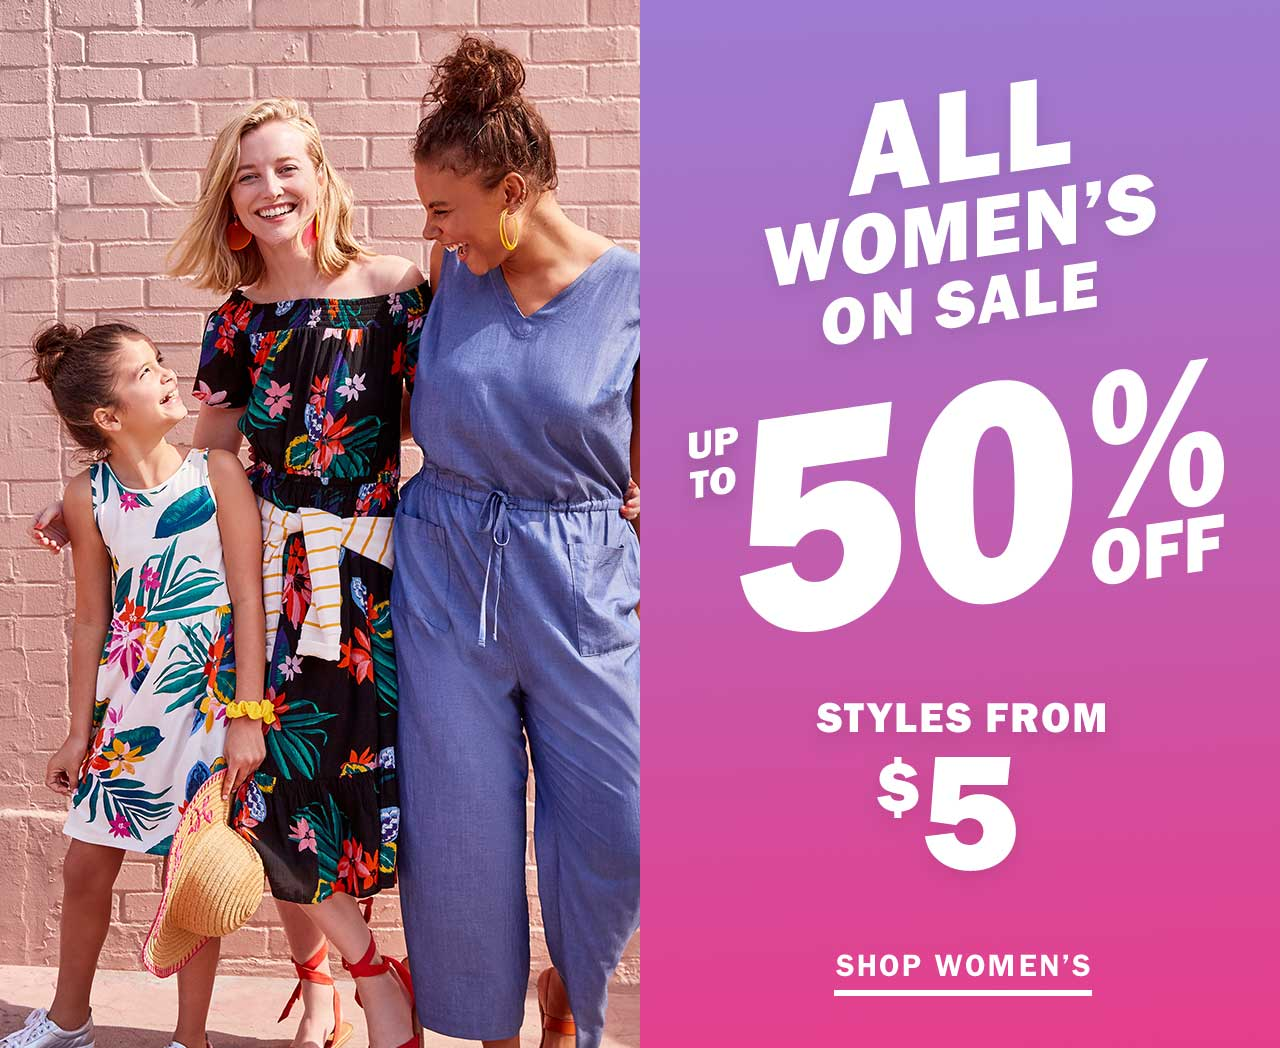 ALL WOMENS ON SALE UP TO 50% OFF | SHOP WOMENS